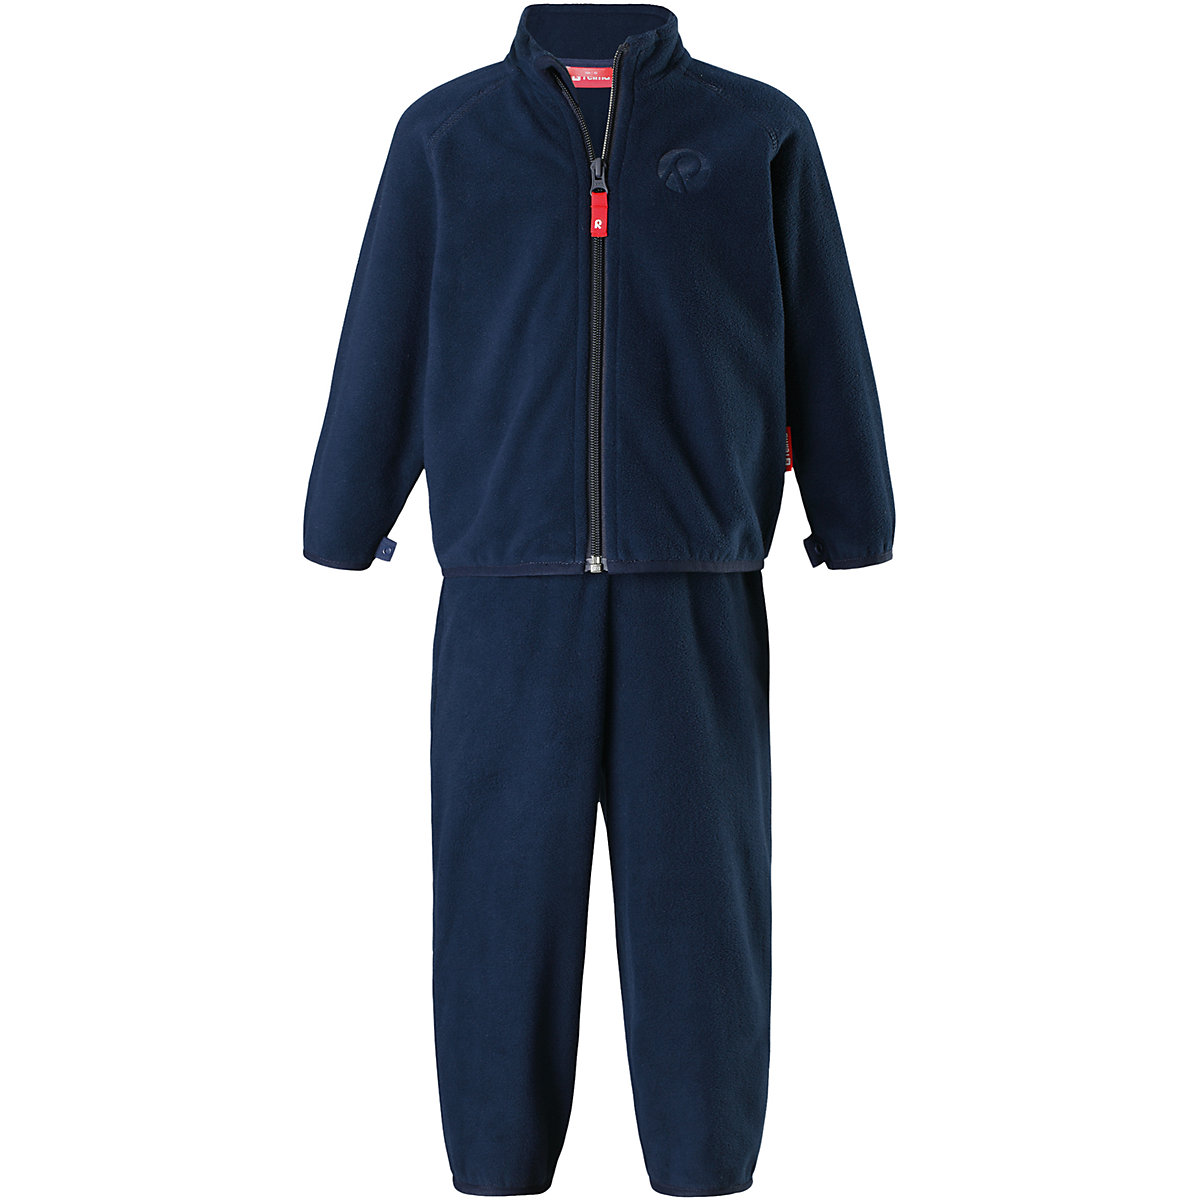 REIMA Babys Sets 8688920 for boys Polyester Baby Kit boy Jacket and pants